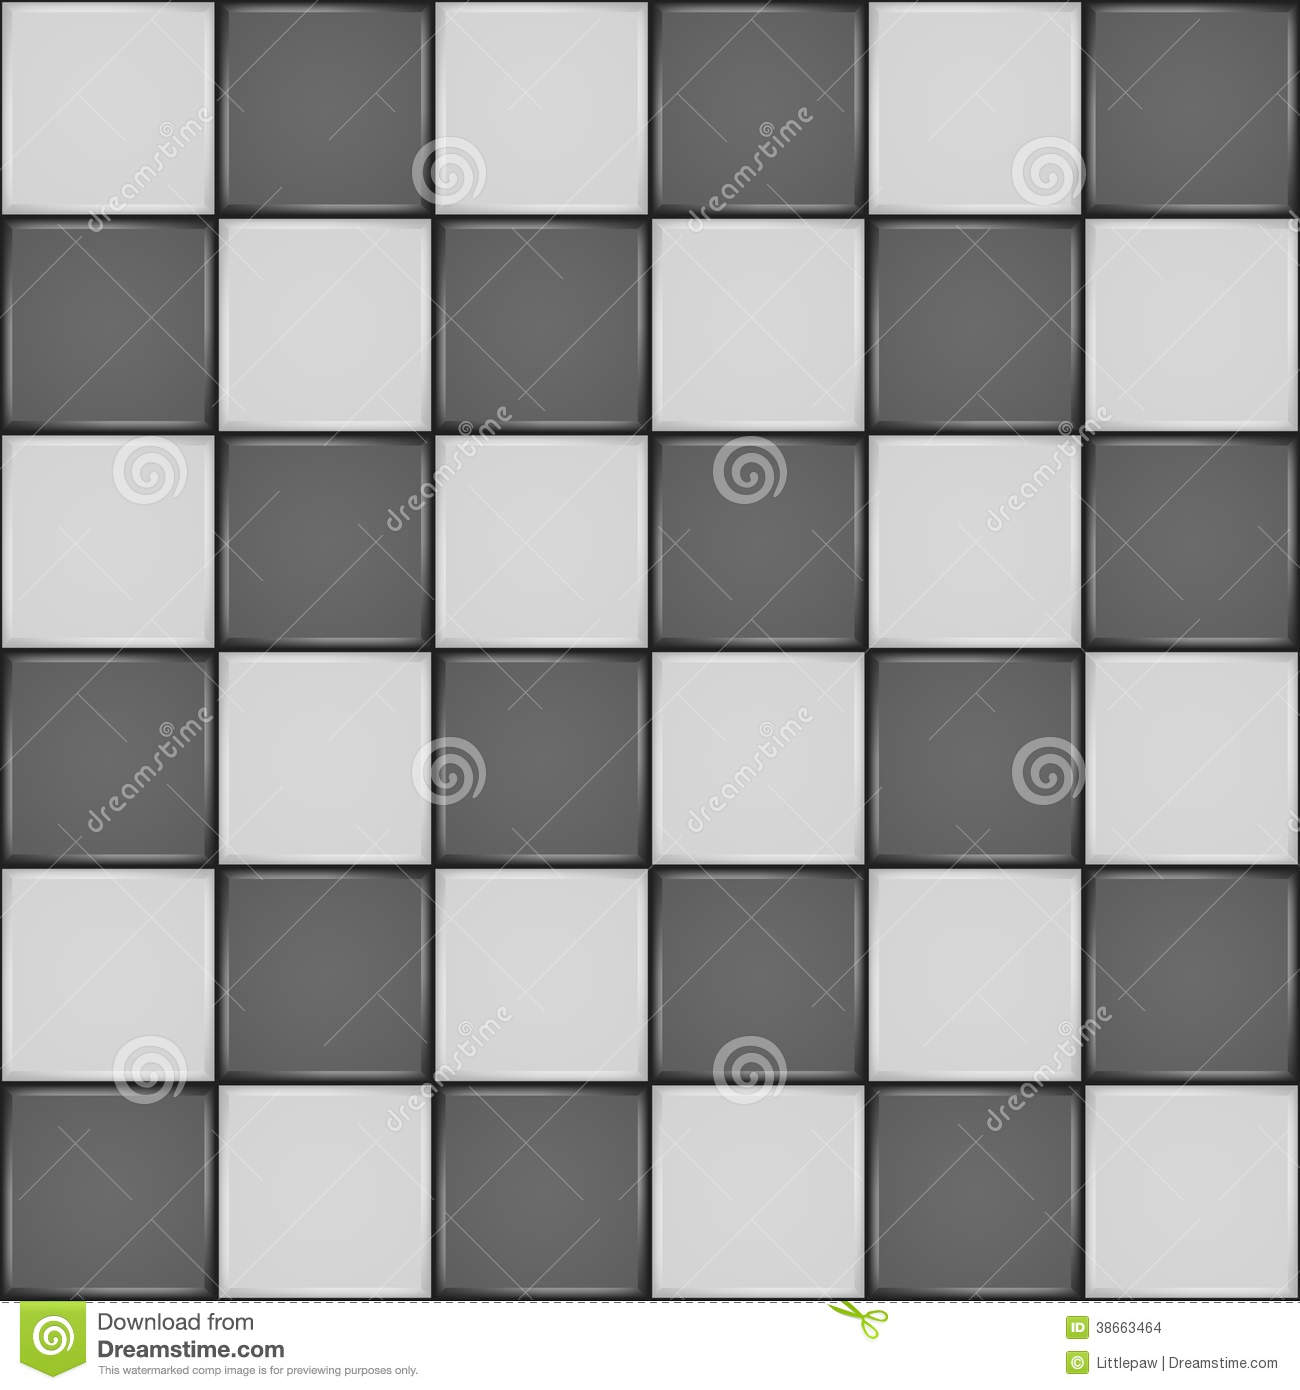 Black And White Ceramic Tile Seamless Pattern Stock Images - Image ...